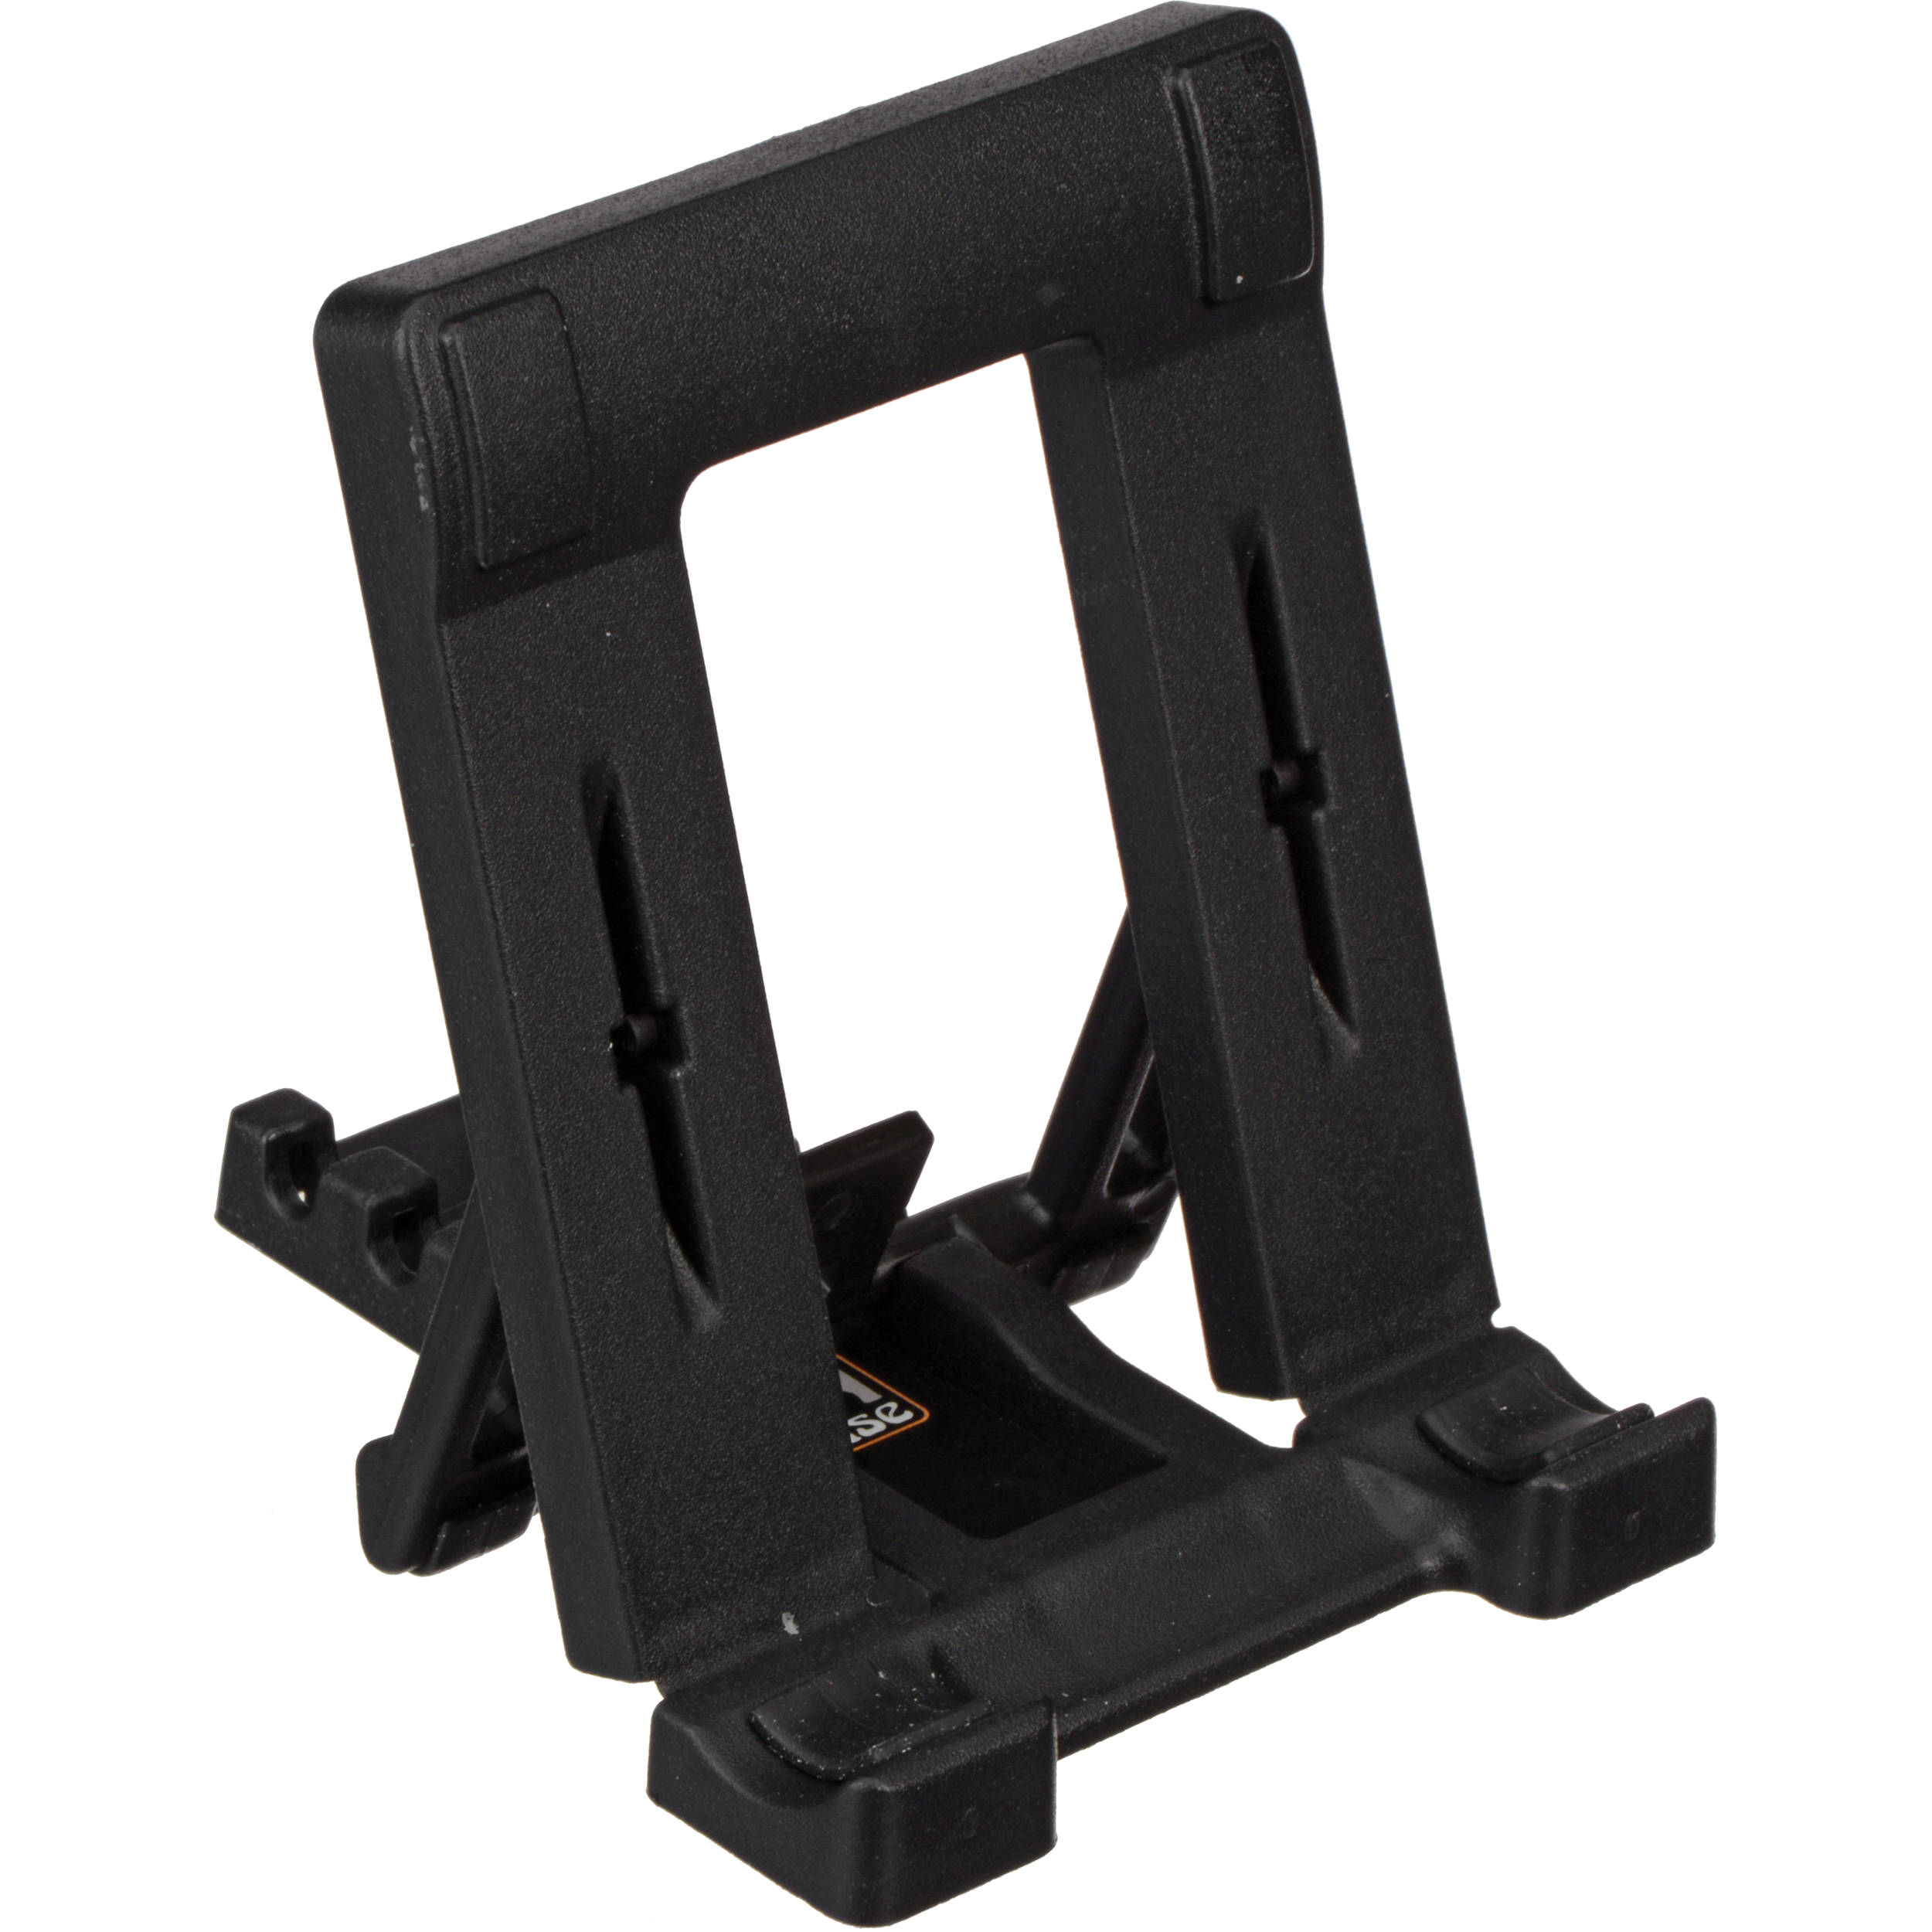 low priced 05c6f f14fa Ape Case Adjustable Mobile Stand for iPhone